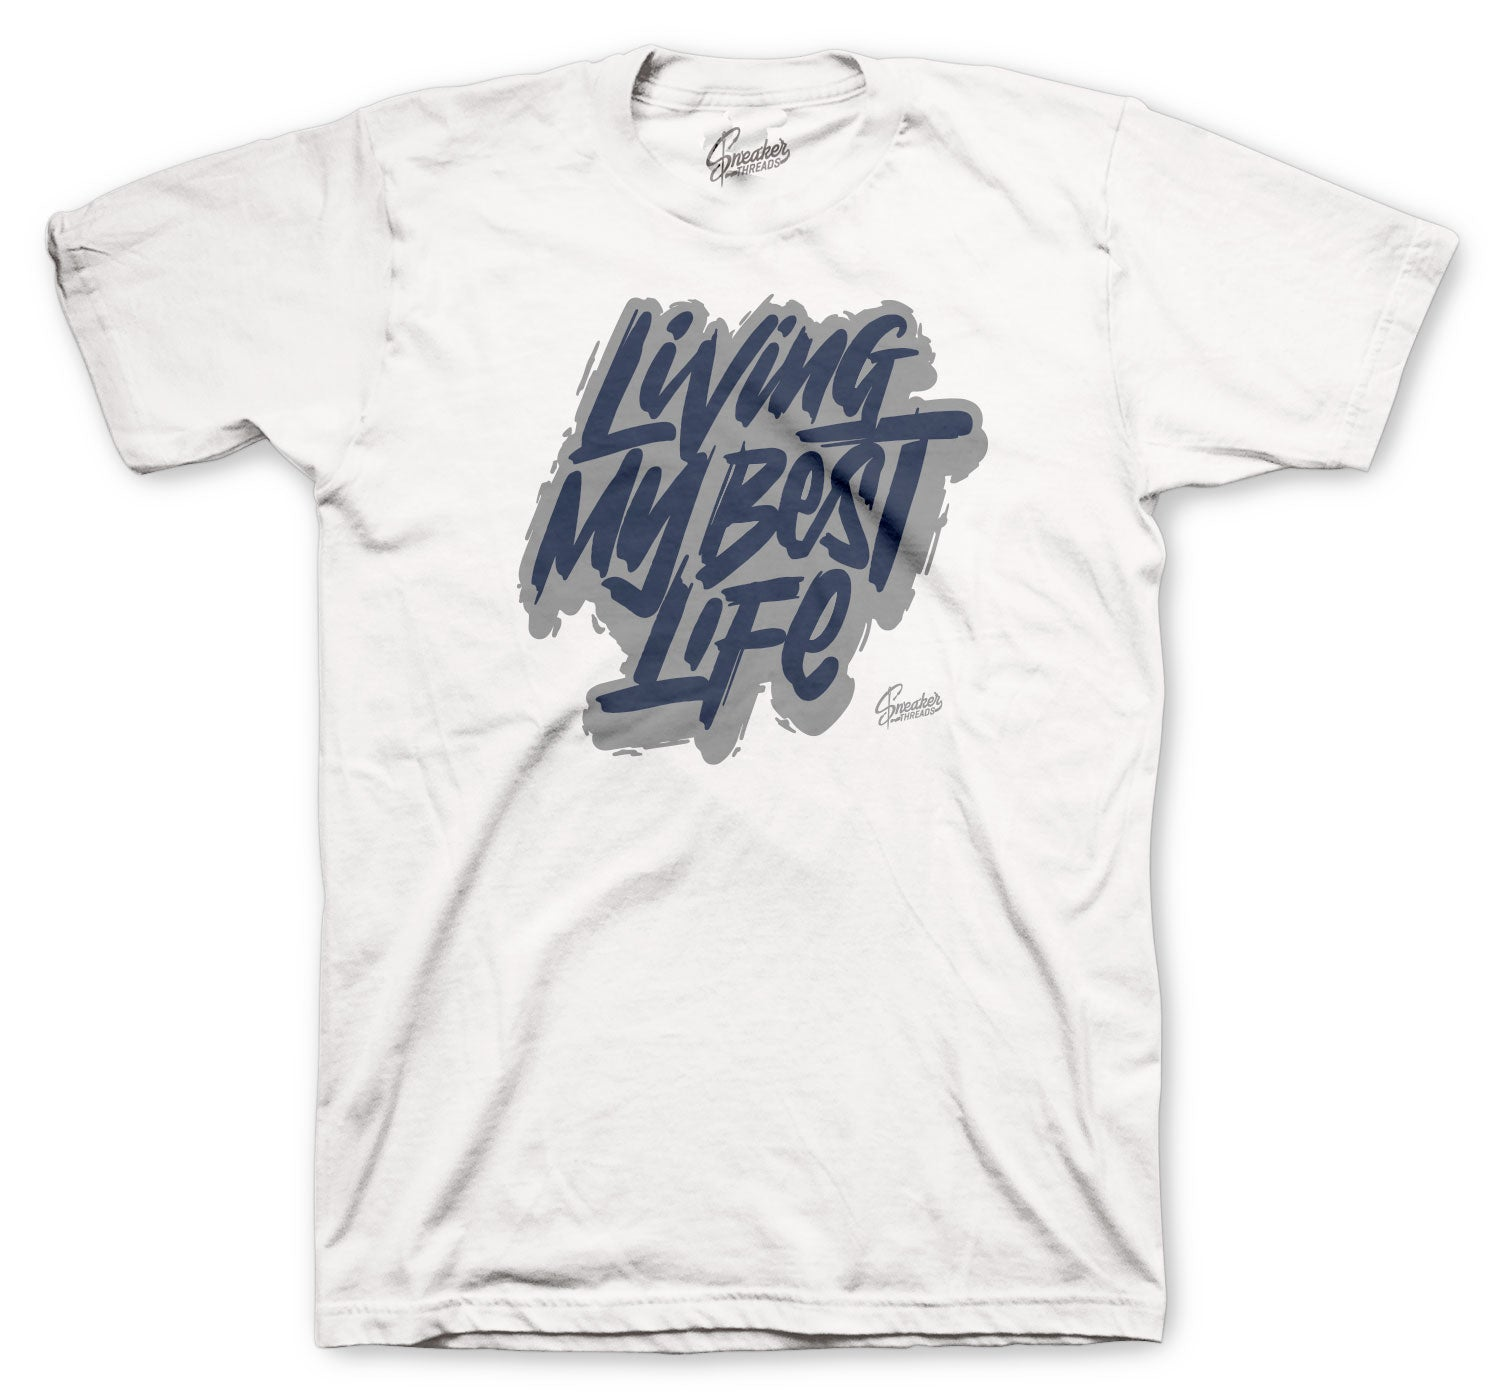 Jordan 13 Flint Shirt - Living Life - White